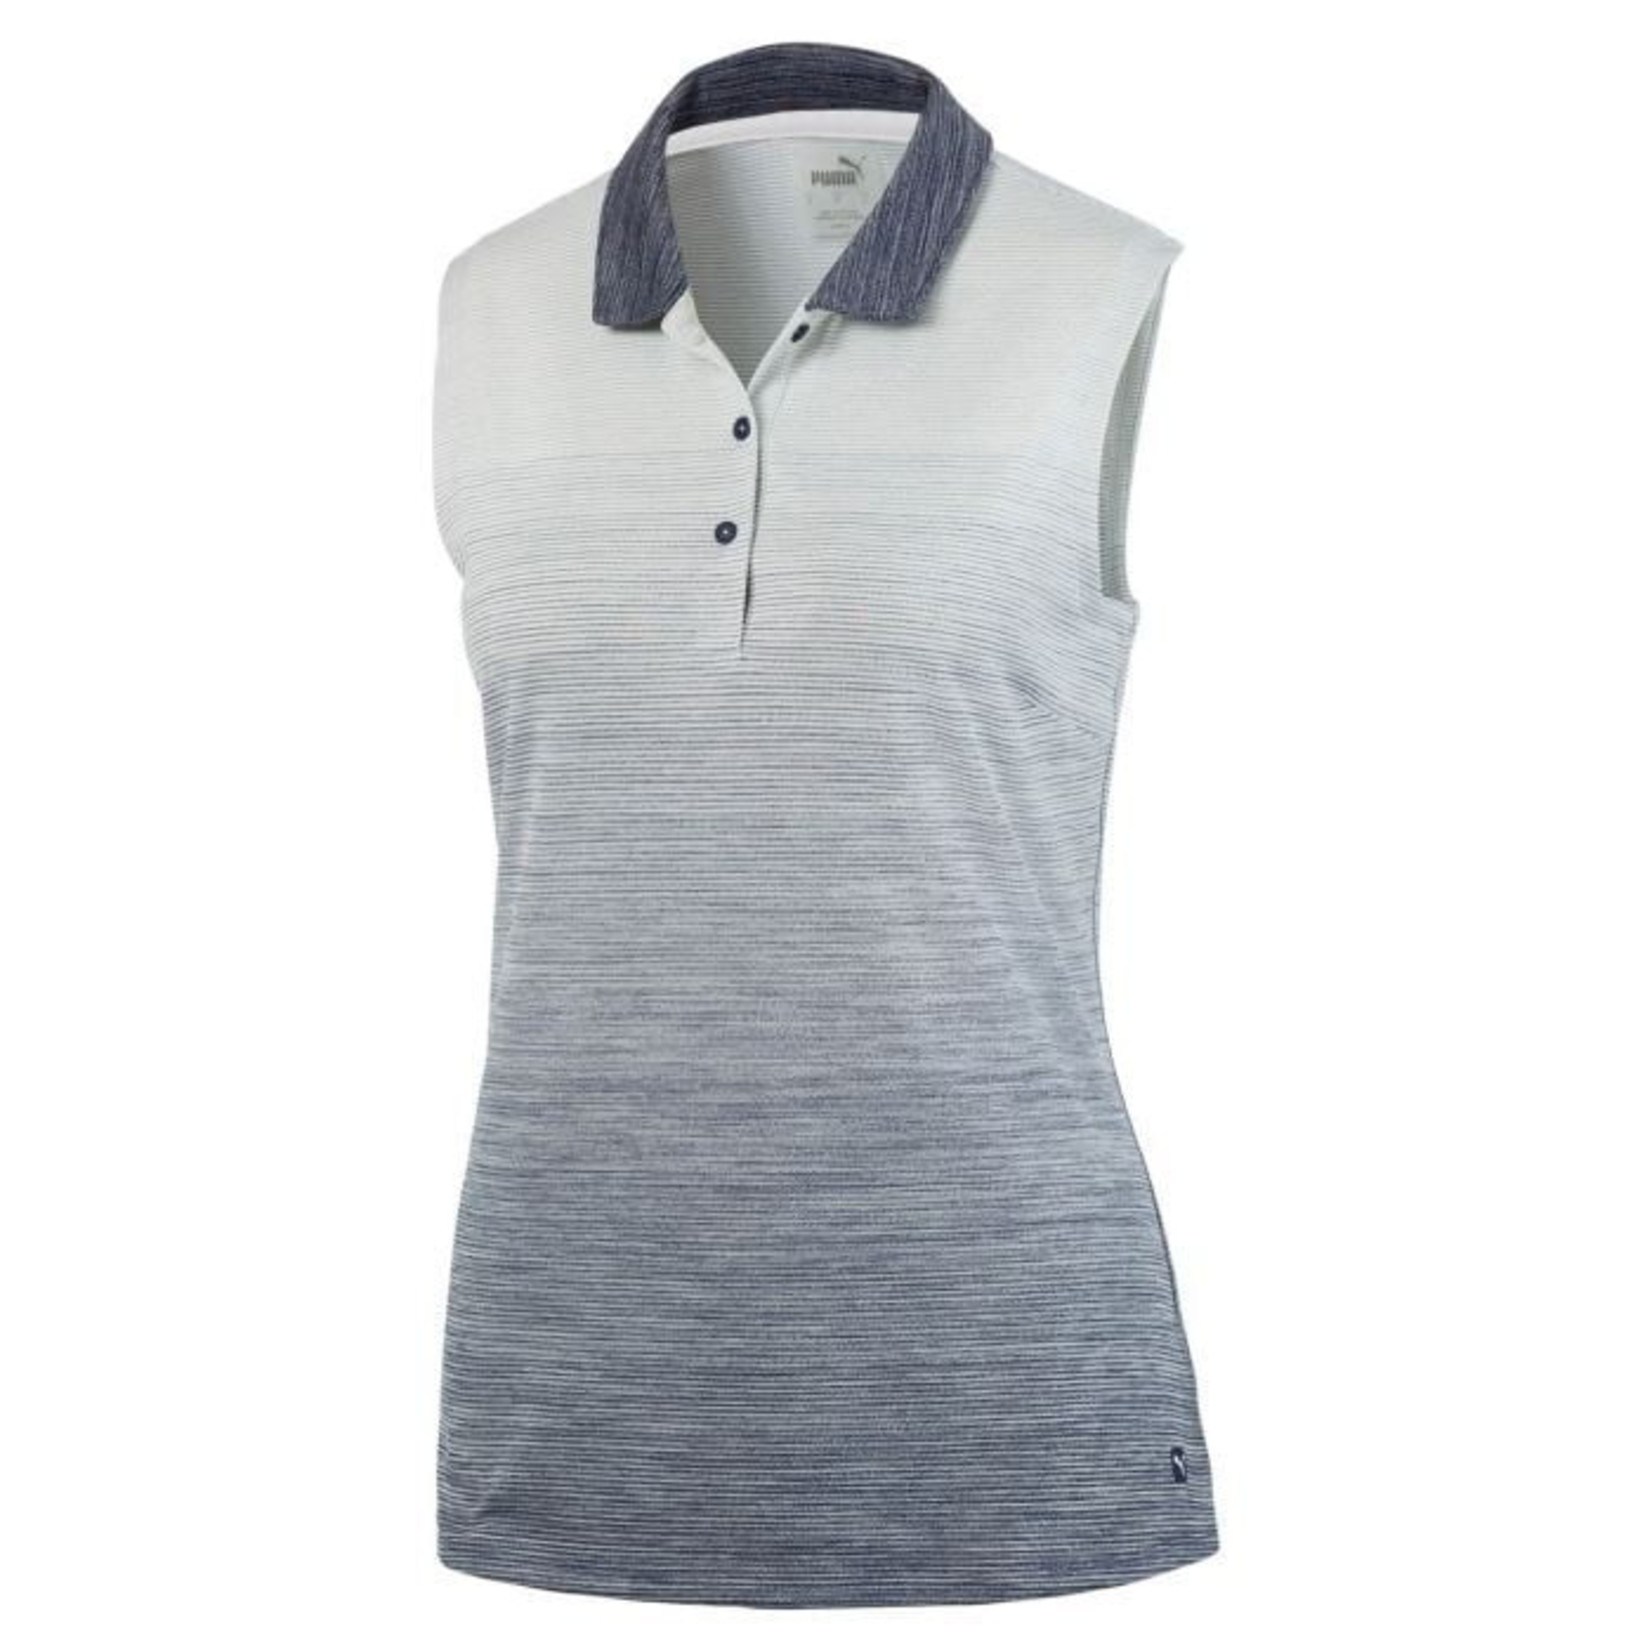 Puma Puma Ombre Sleeveless polo